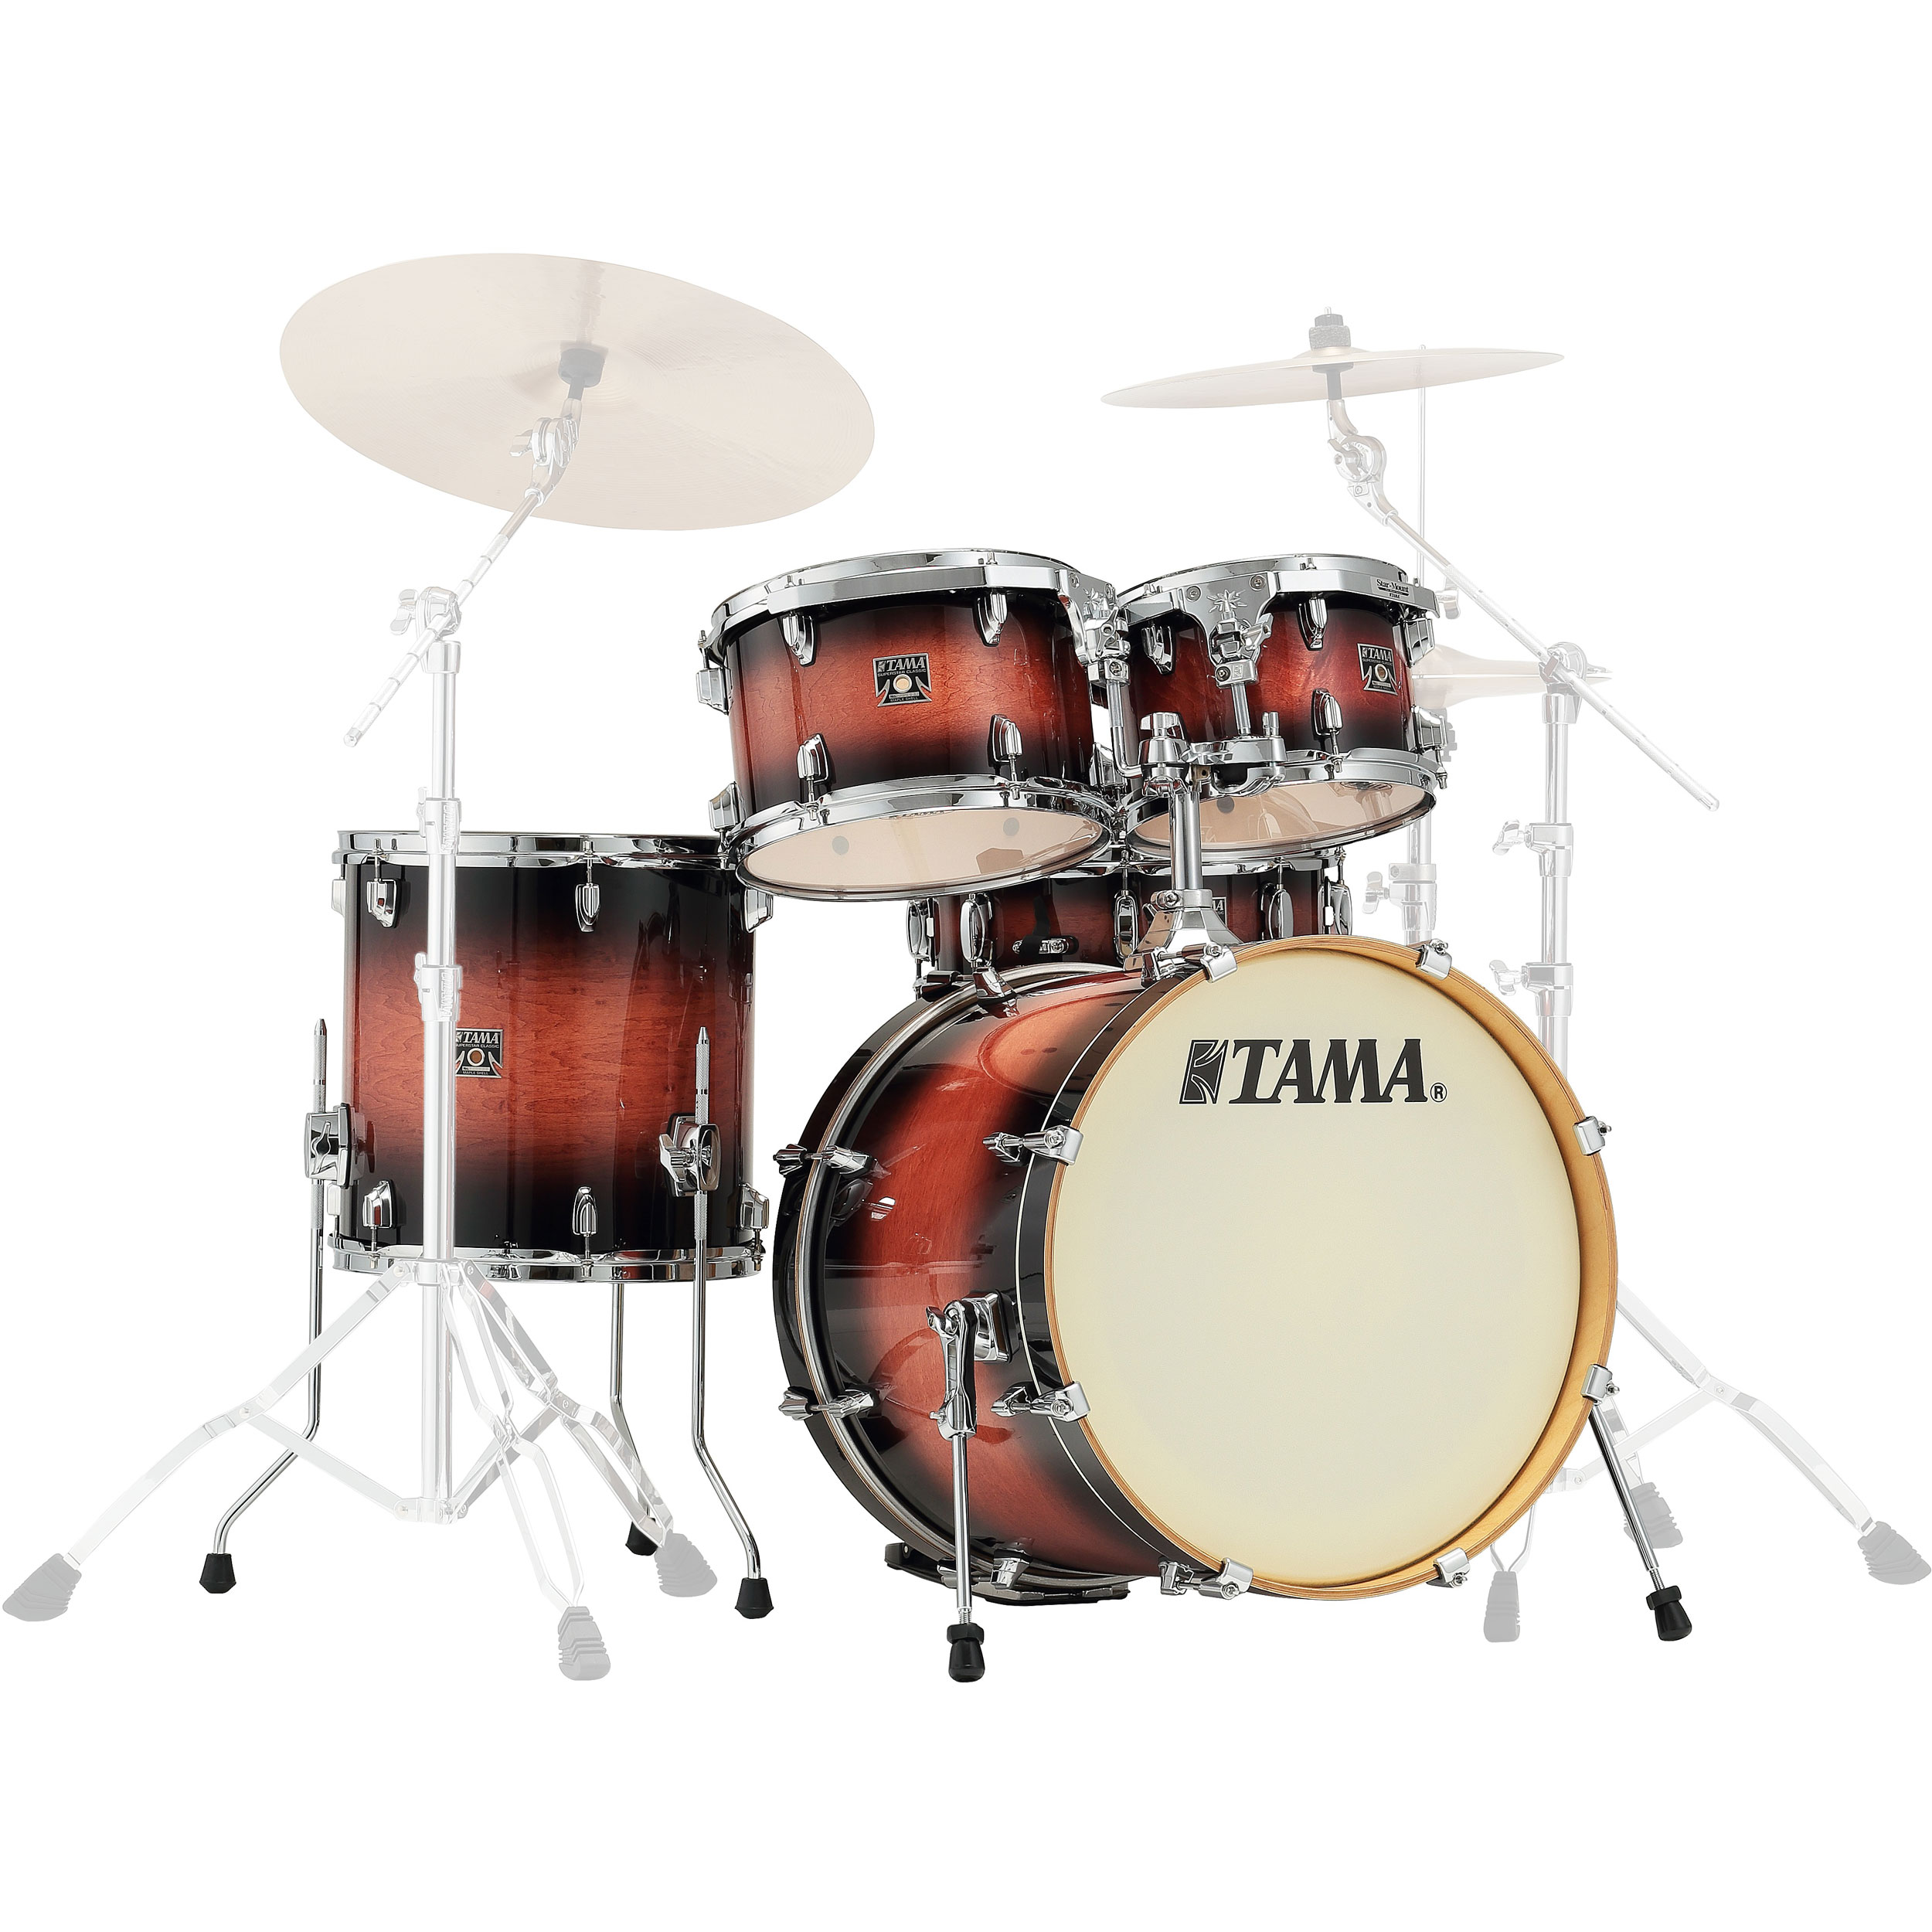 "Tama Superstar Classic 5-Piece Drum Set Shell Pack (20"" Bass, 10/12/14"" Toms, 14"" Snare) in Lacquer Finish"